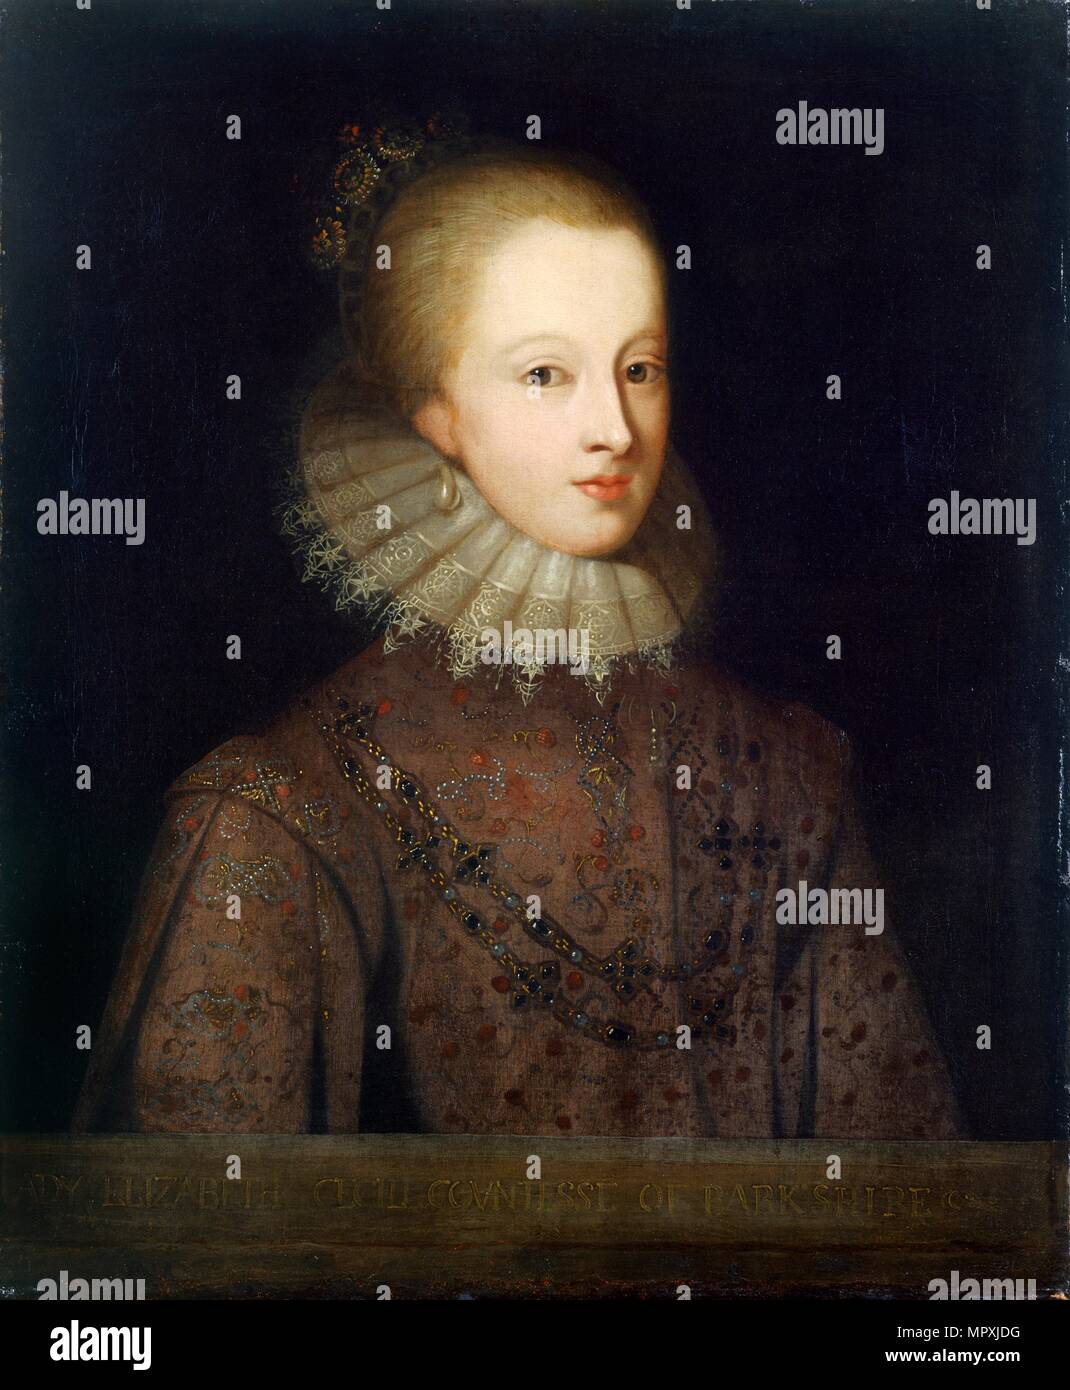 Elizabeth Cecil, Countess of Berkshire, late 17th century(?). Artist: Unknown. - Stock Image